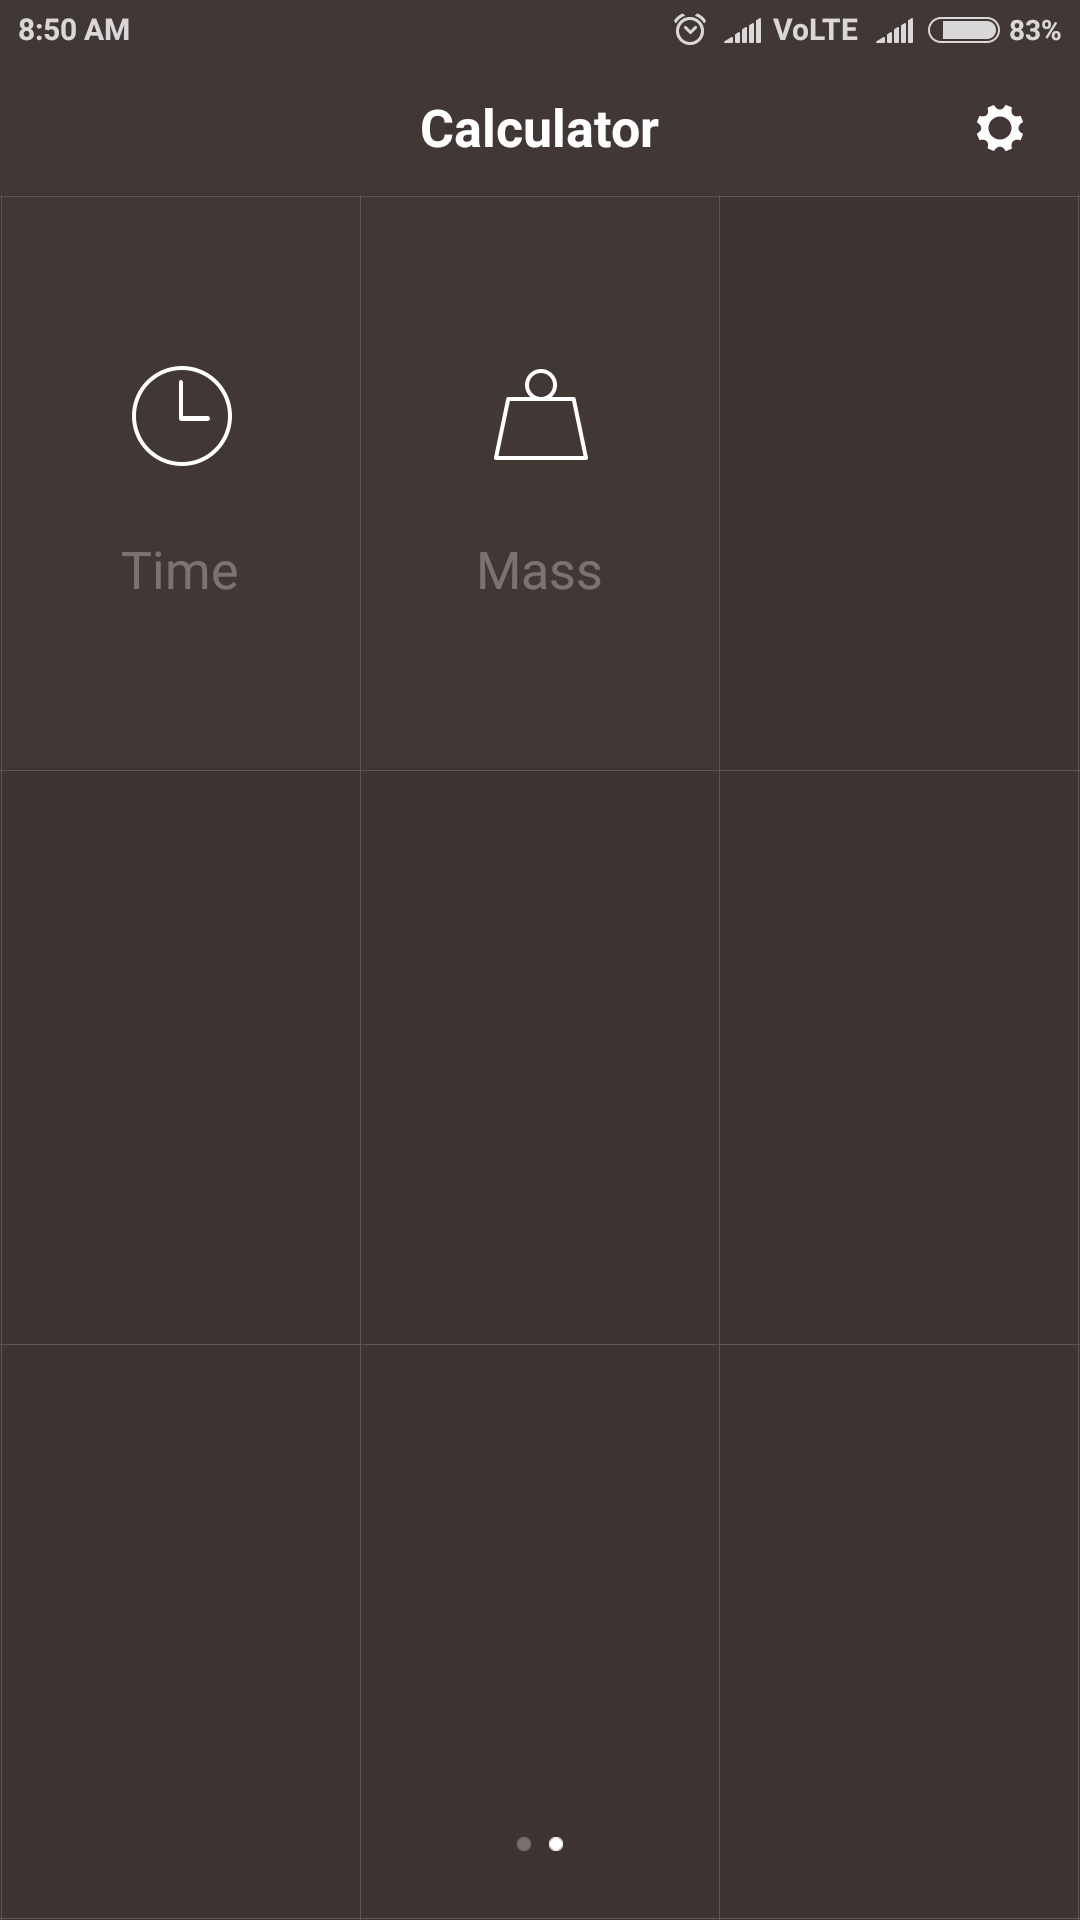 Screenshot_2017-05-02-08-50-46-585_com.miui.calculator.png